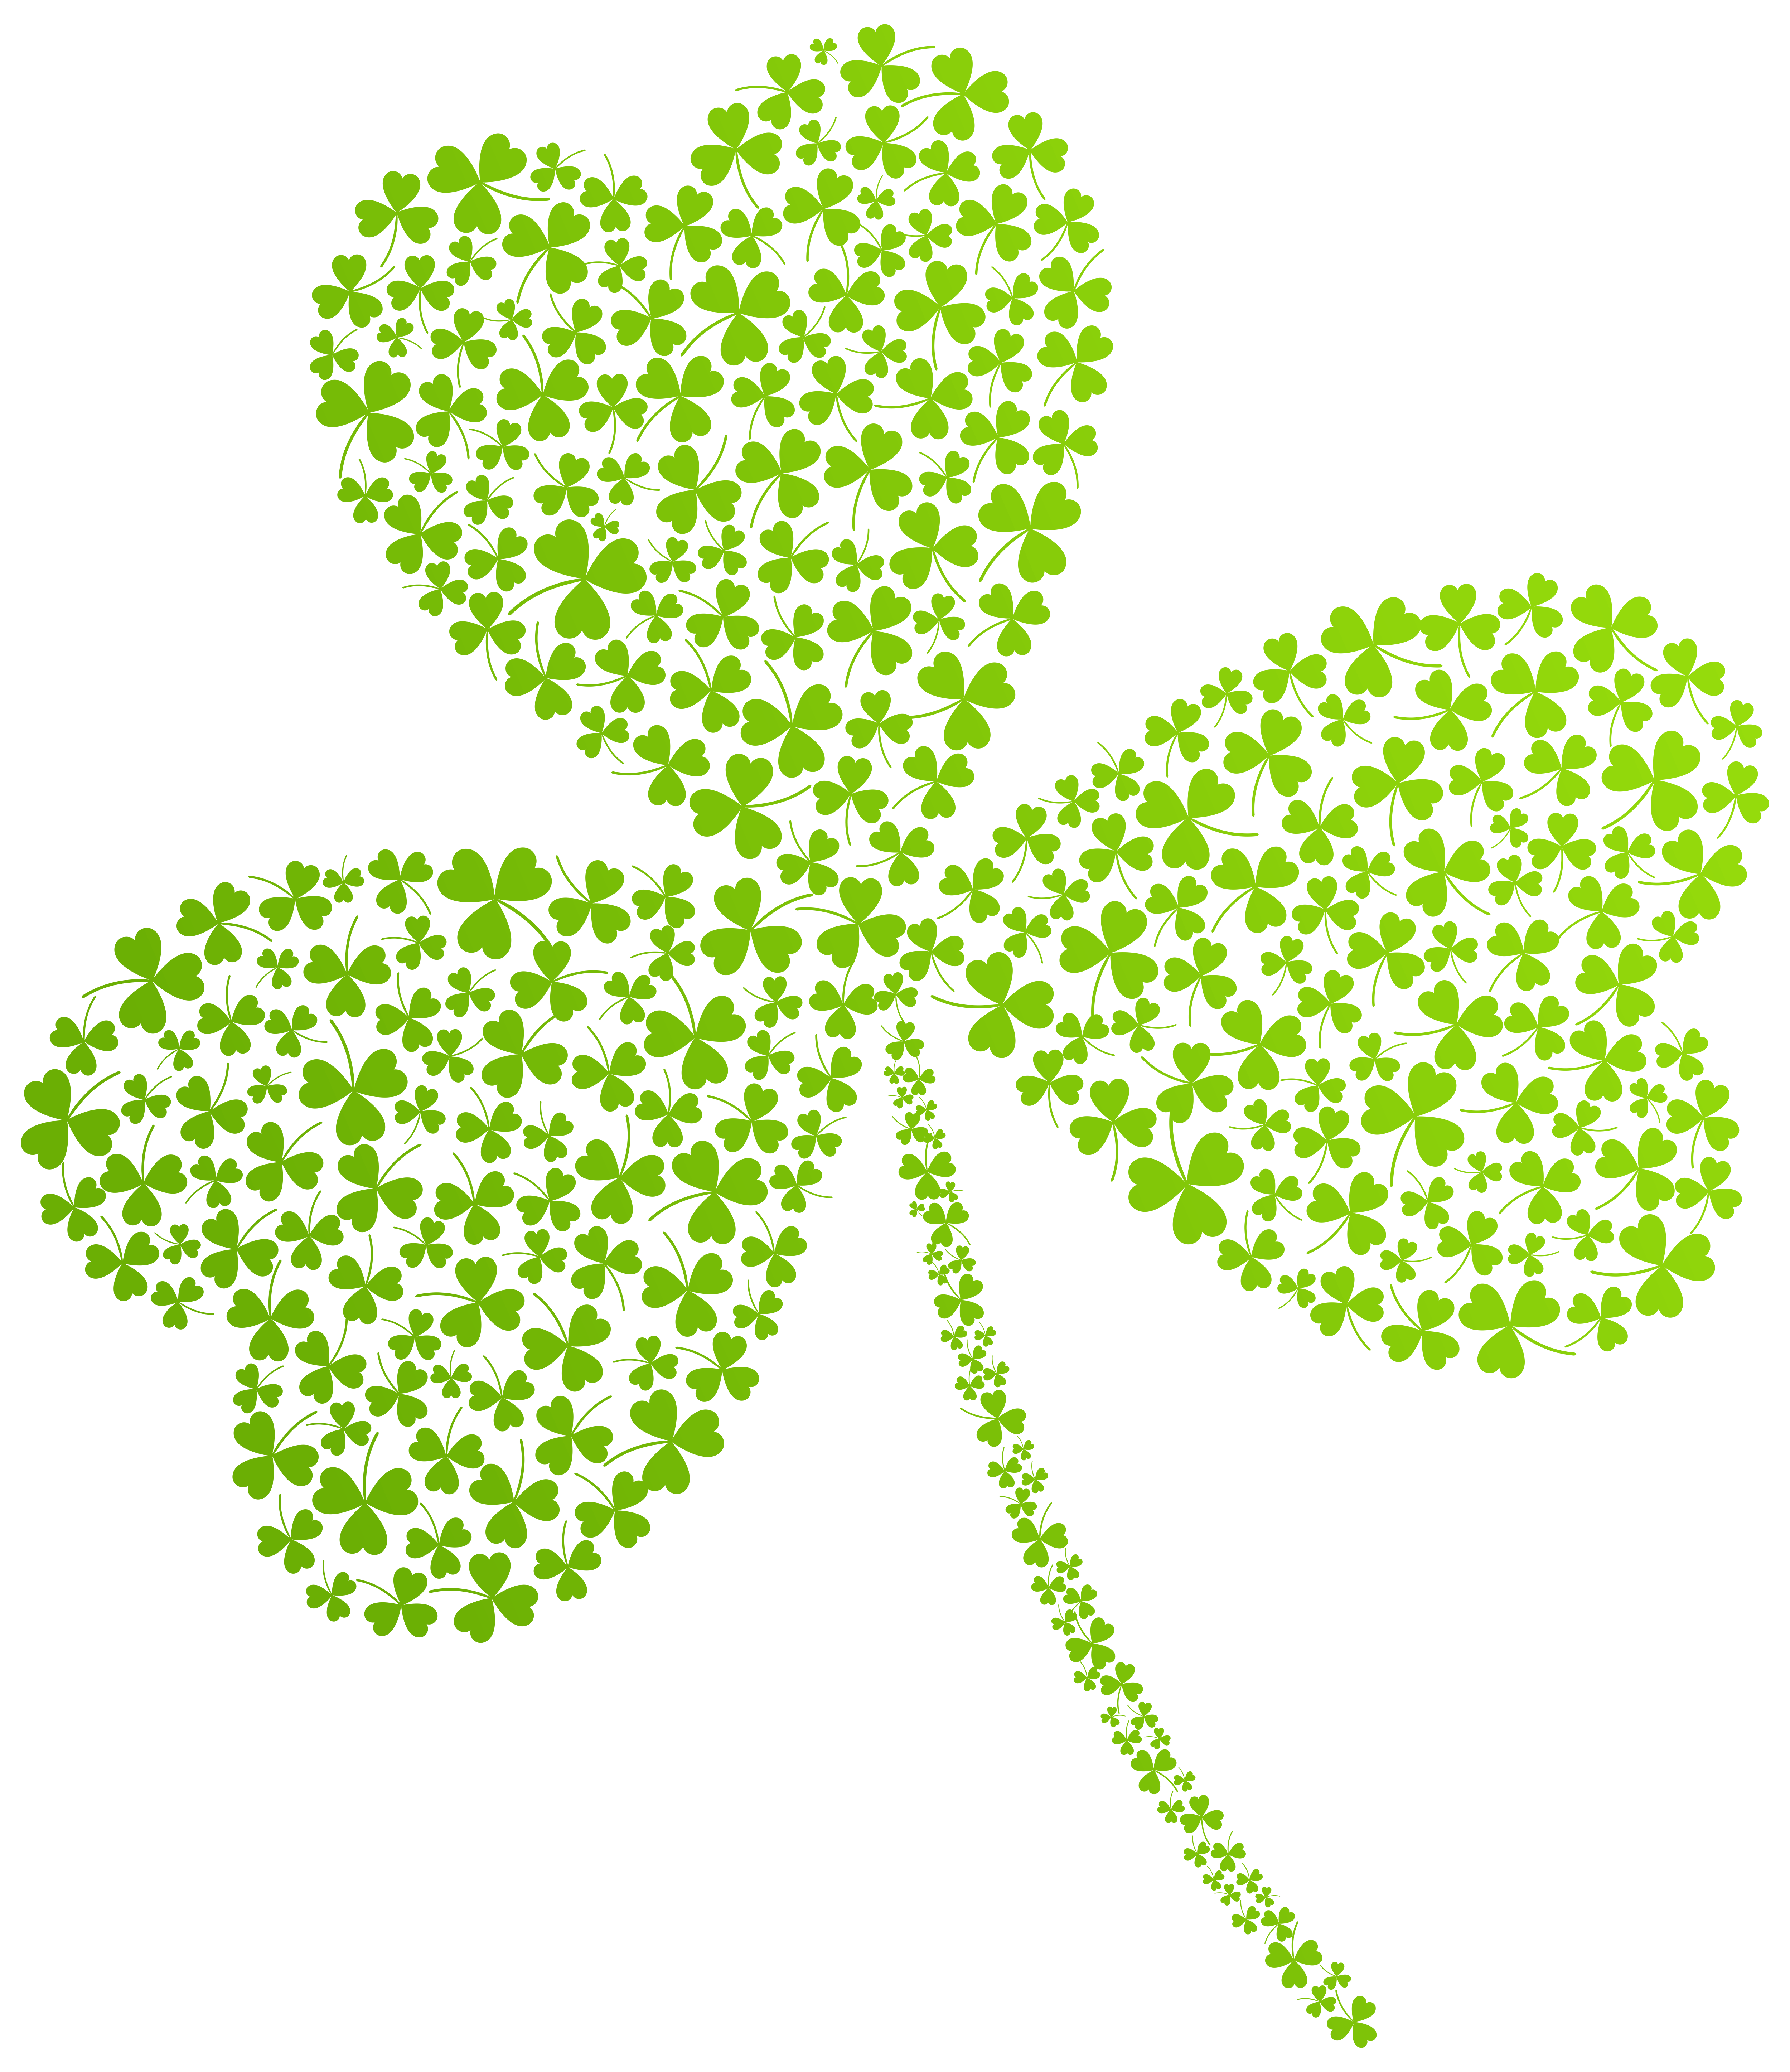 St patricks day divider clipart banner free stock Free Shamrock Clip Art, Download Free Clip Art, Free Clip ... banner free stock